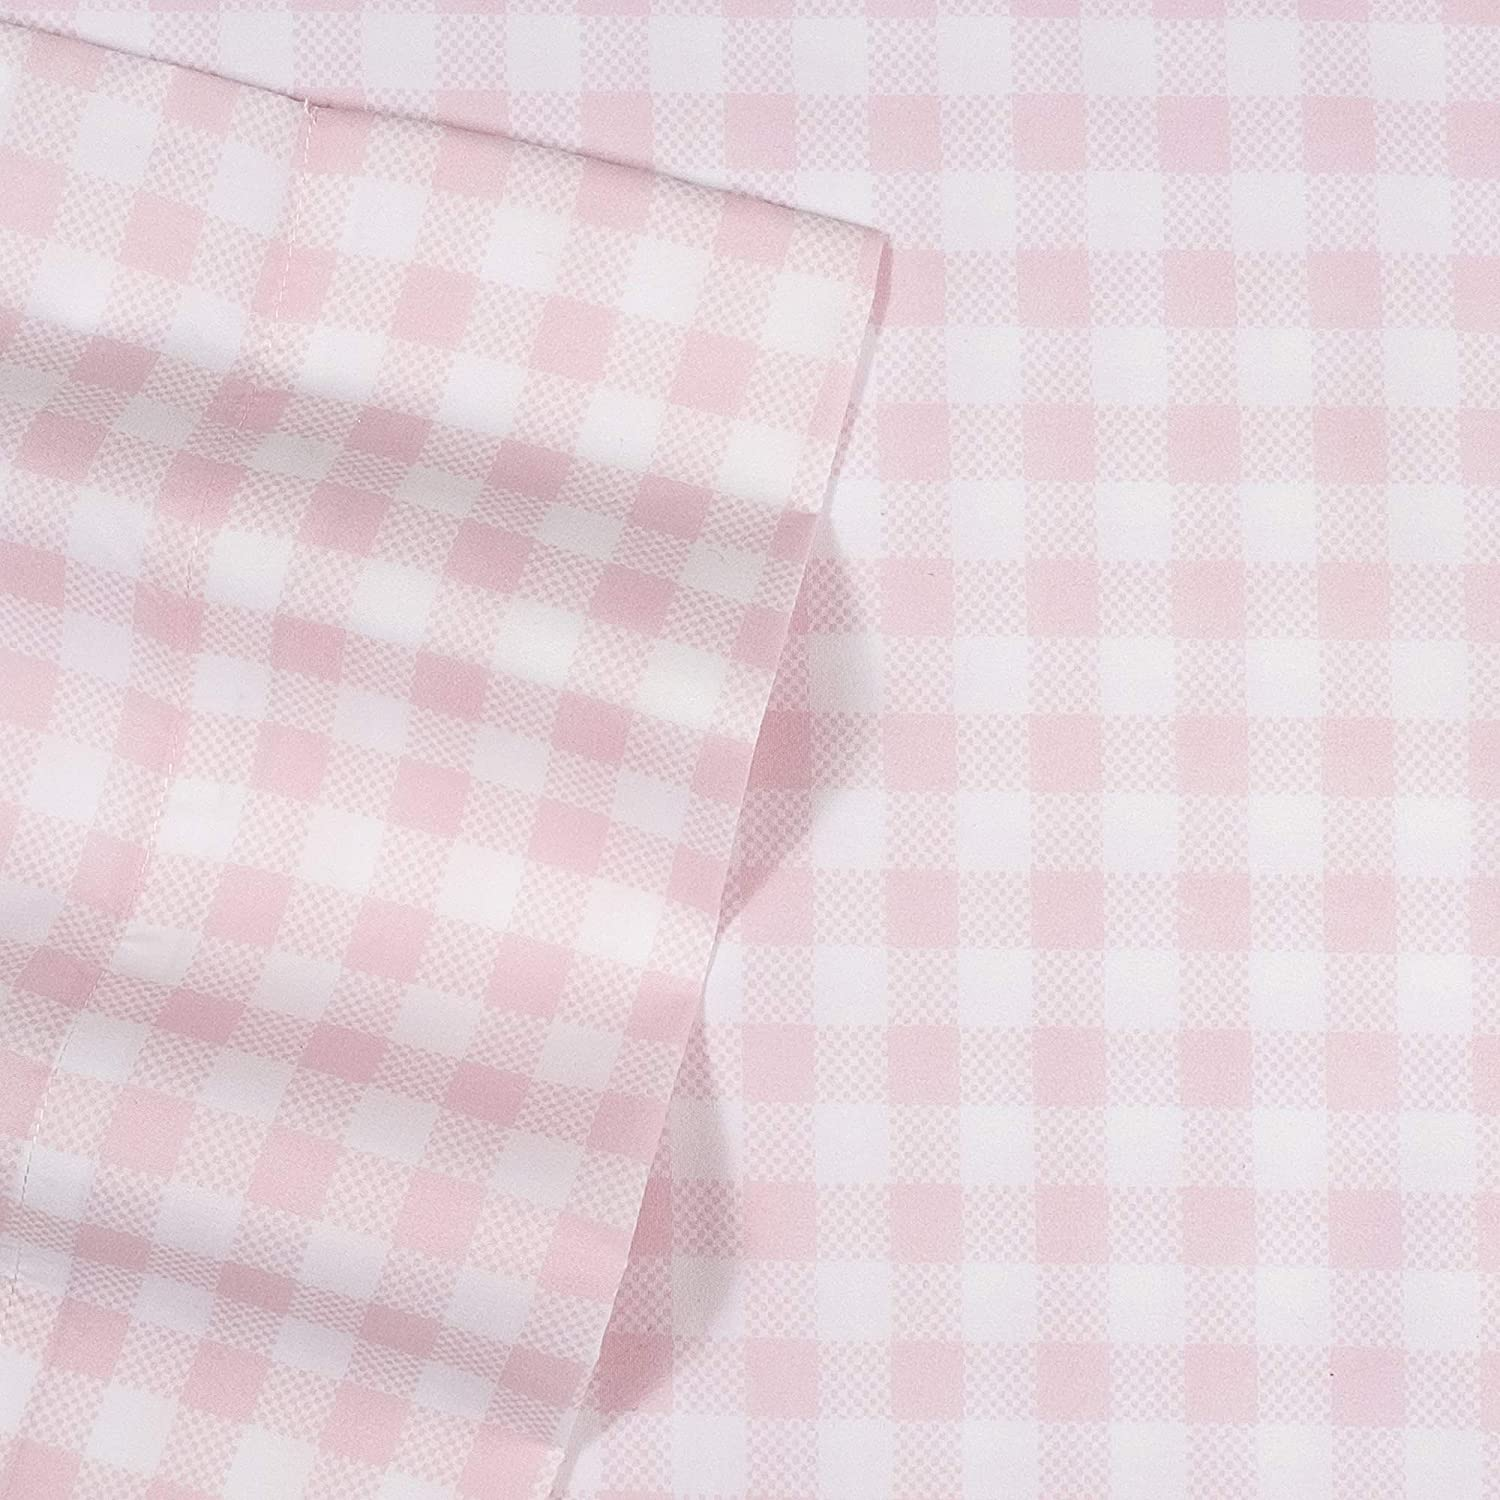 1500 Supreme Kids Bed Sheet Collection - Fun Colorful and Comfortable Boys and Girls Toddler Sheet Sets - Deep Pocket Wrinkle Free Hypoallergenic Soft and Cozy Bedding - Twin XL, Pink Gingham